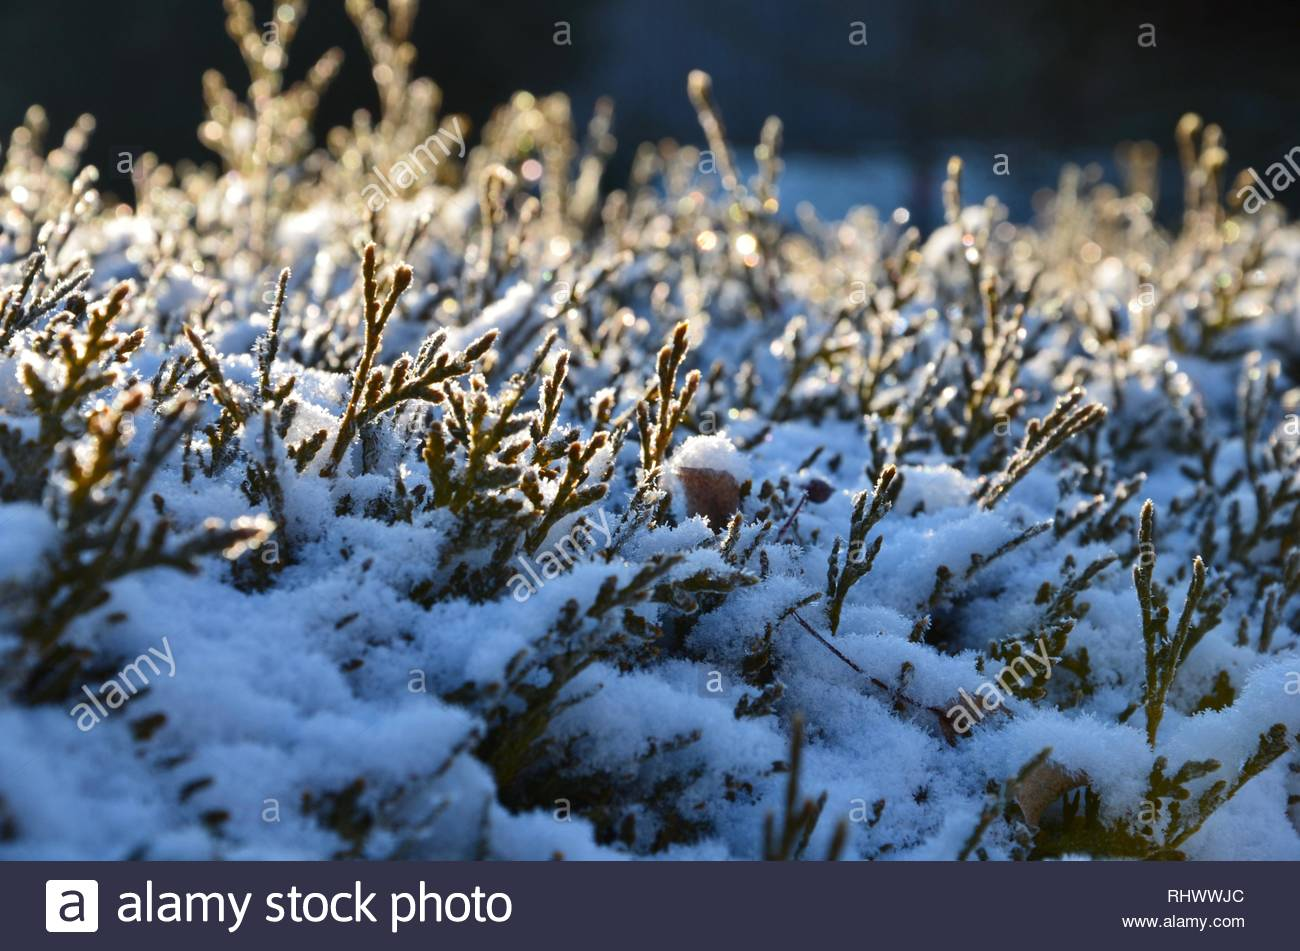 Closeup of conifers covered with snow, frosty winter morning, reflections of sunlight on the peaks, season, background, calendar, natural environment - Stock Image